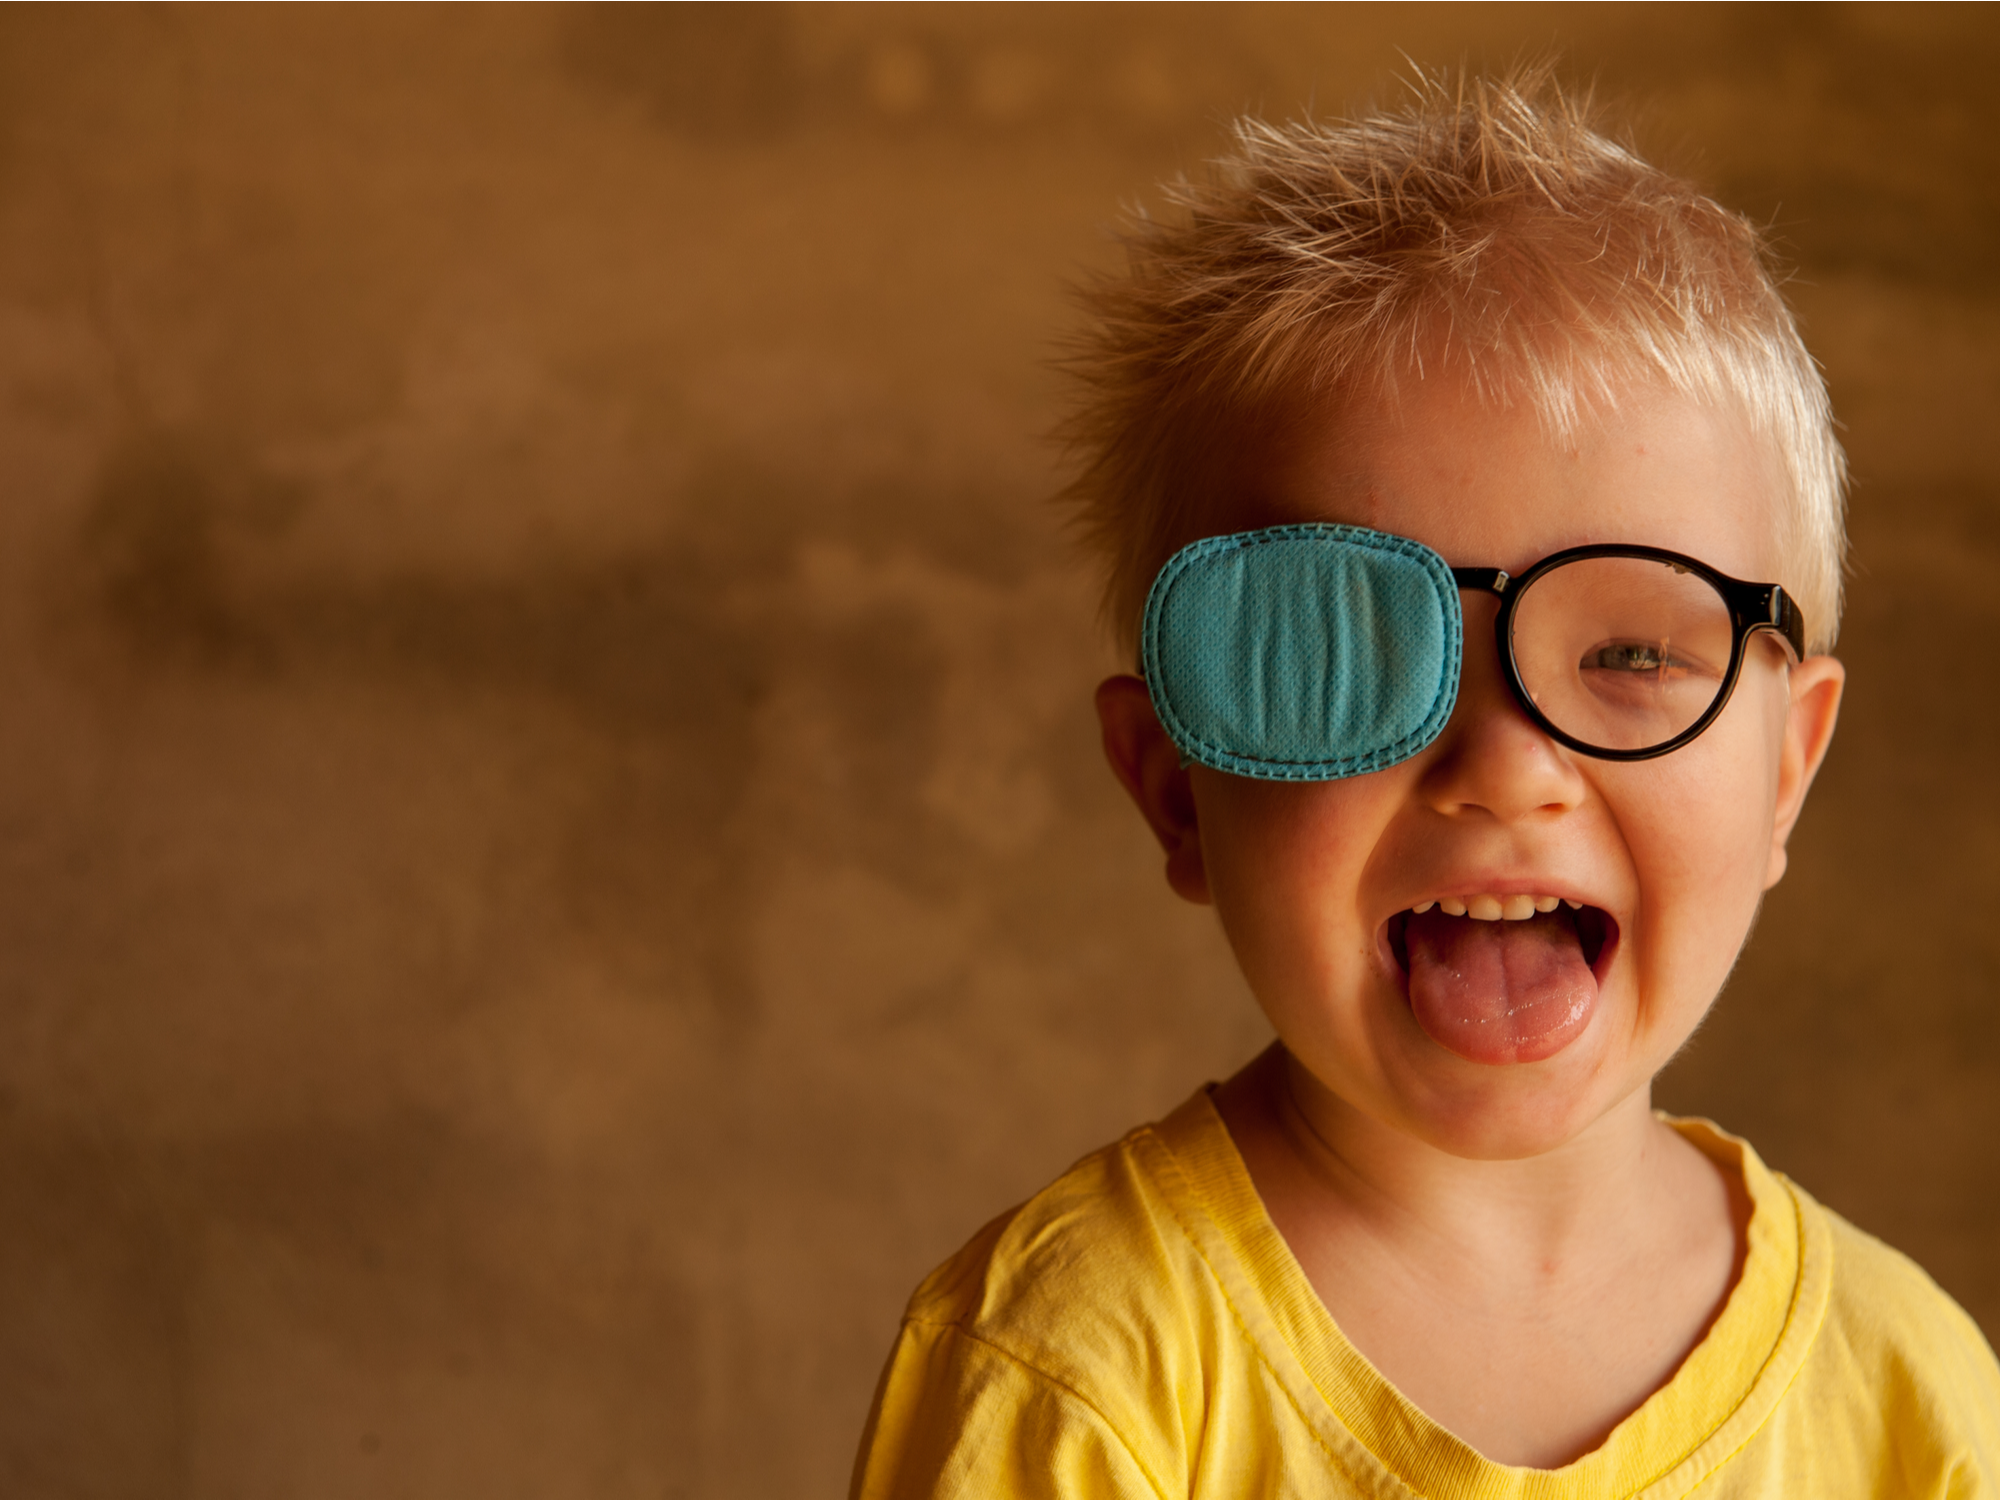 How to Know if your Child has Amblyopia